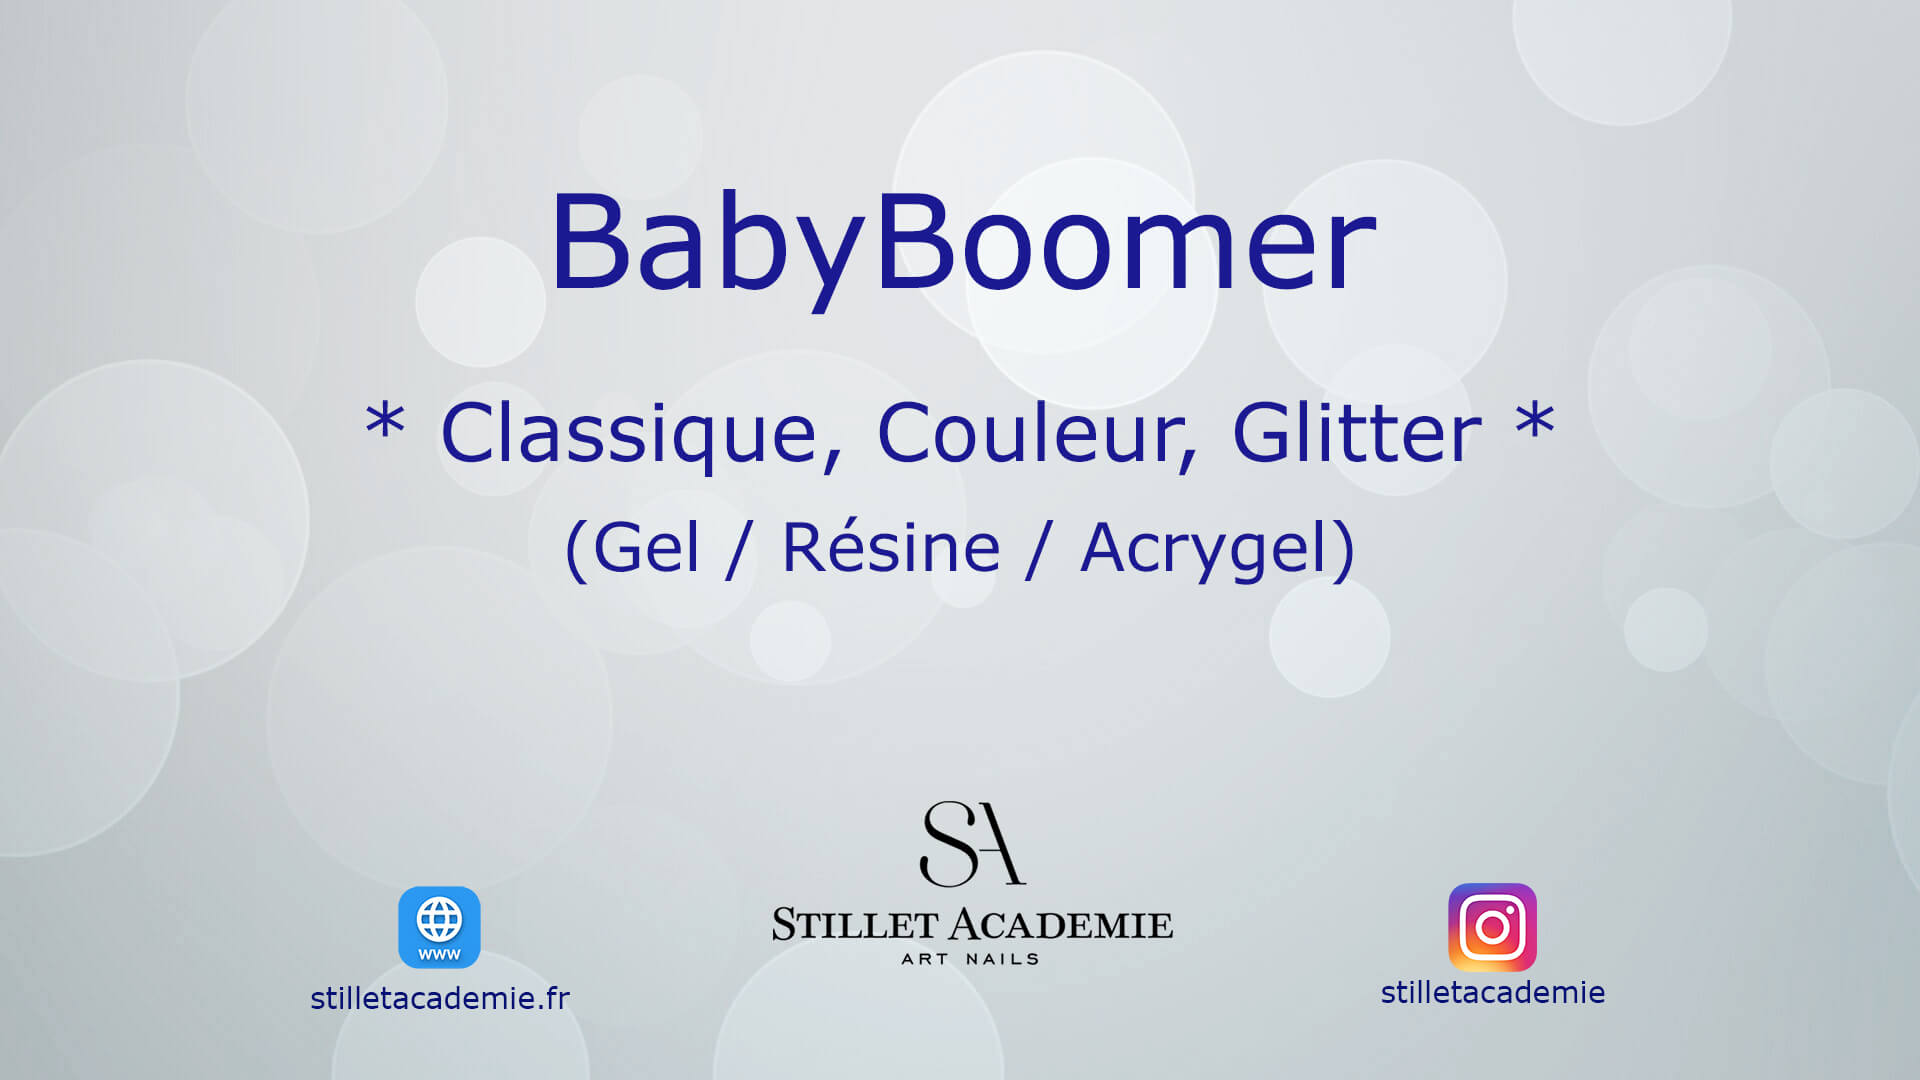 Cours-video Stillet Academie Babyboomer